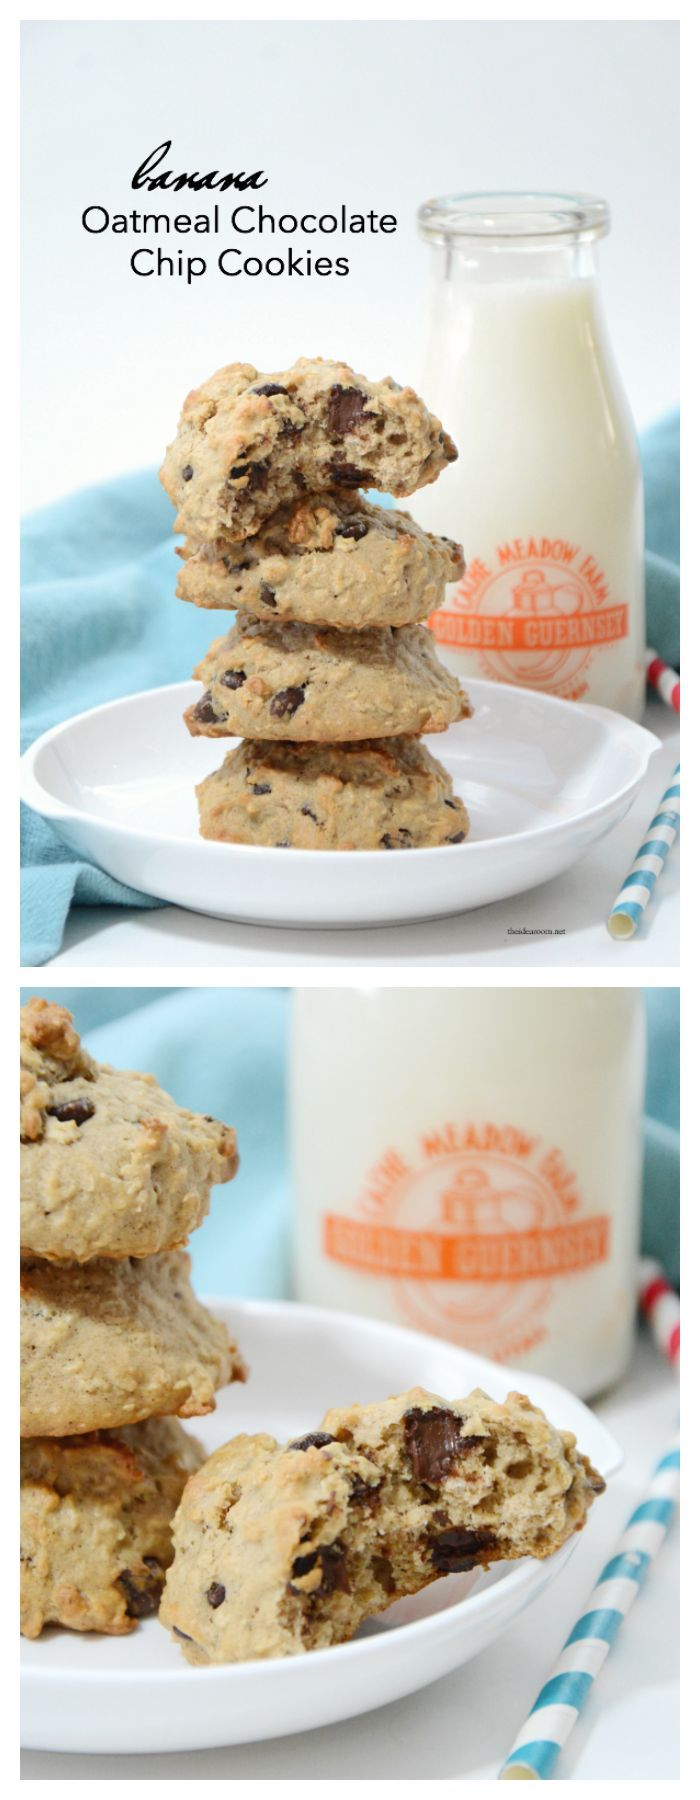 Recipes   Looking for a delicious Banana Cookies Recipe? These Banana Oatmeal Chocolate Chip Cookies are so tasty and are a great way to use your overripe bananas.